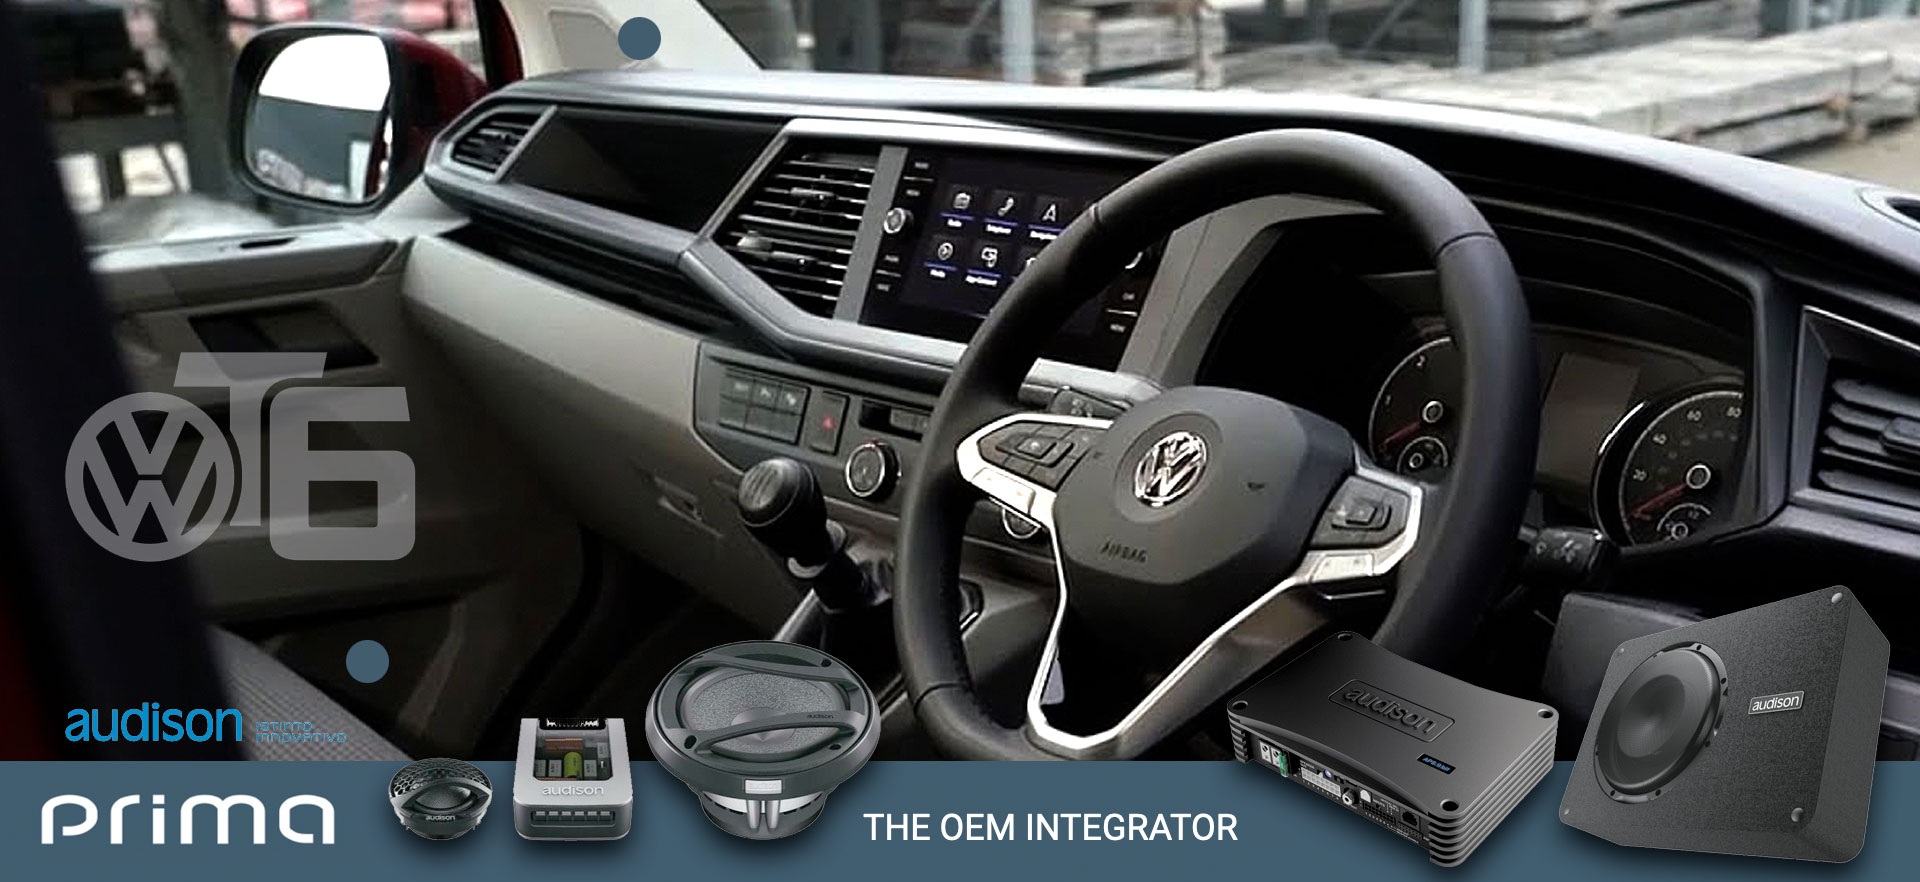 Drive A VW Transporter? Need A Audio Upgrade? Then Give Us A Call - VW Audison Specialists - TTW